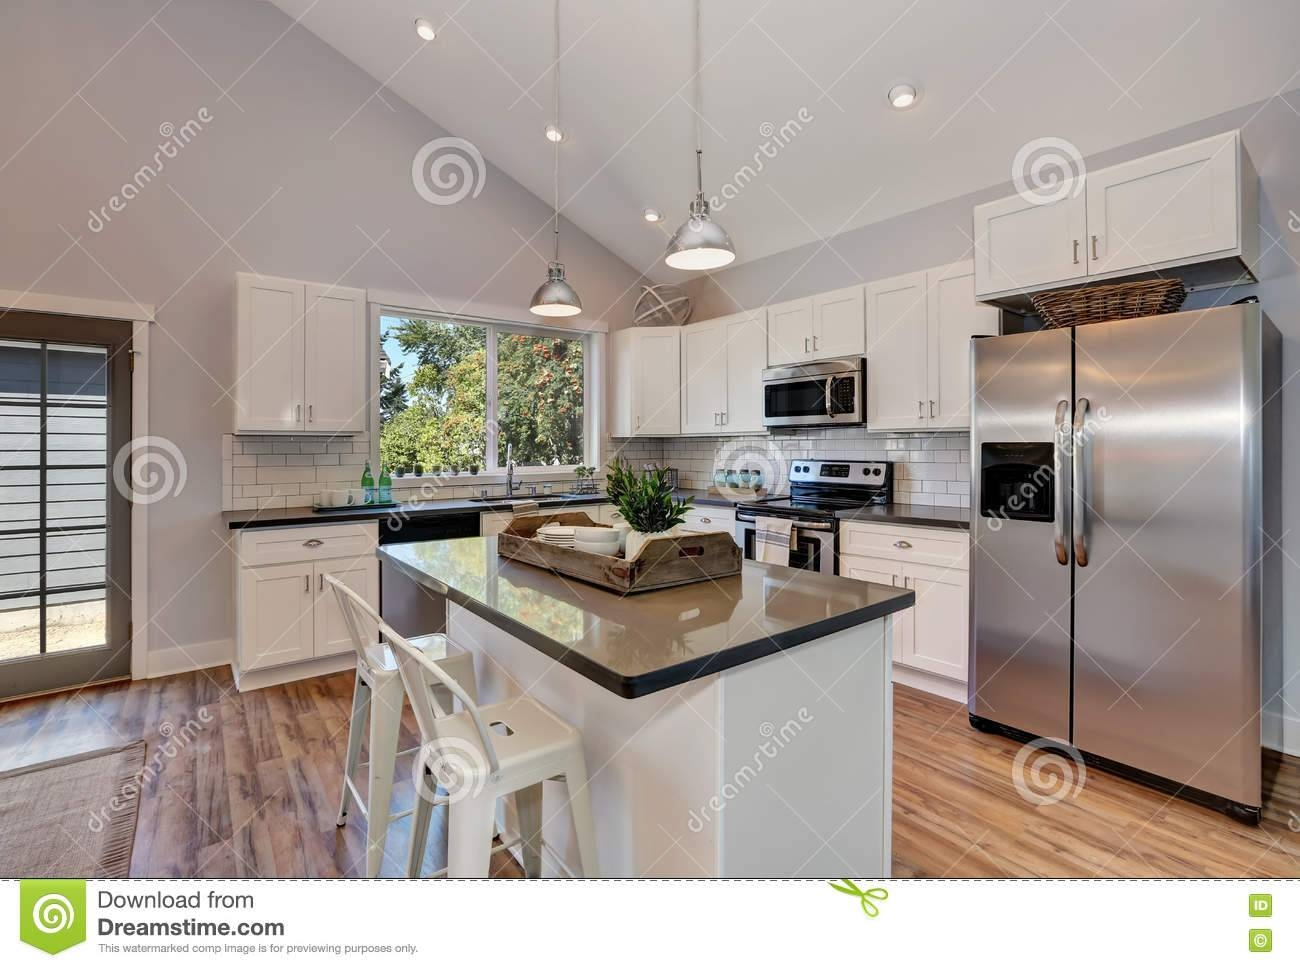 Interior Of Kitchen Room With High Vaulted Ceiling. Stock Photo throughout Vaulted Ceiling Pendant Lighting (Image 8 of 15)